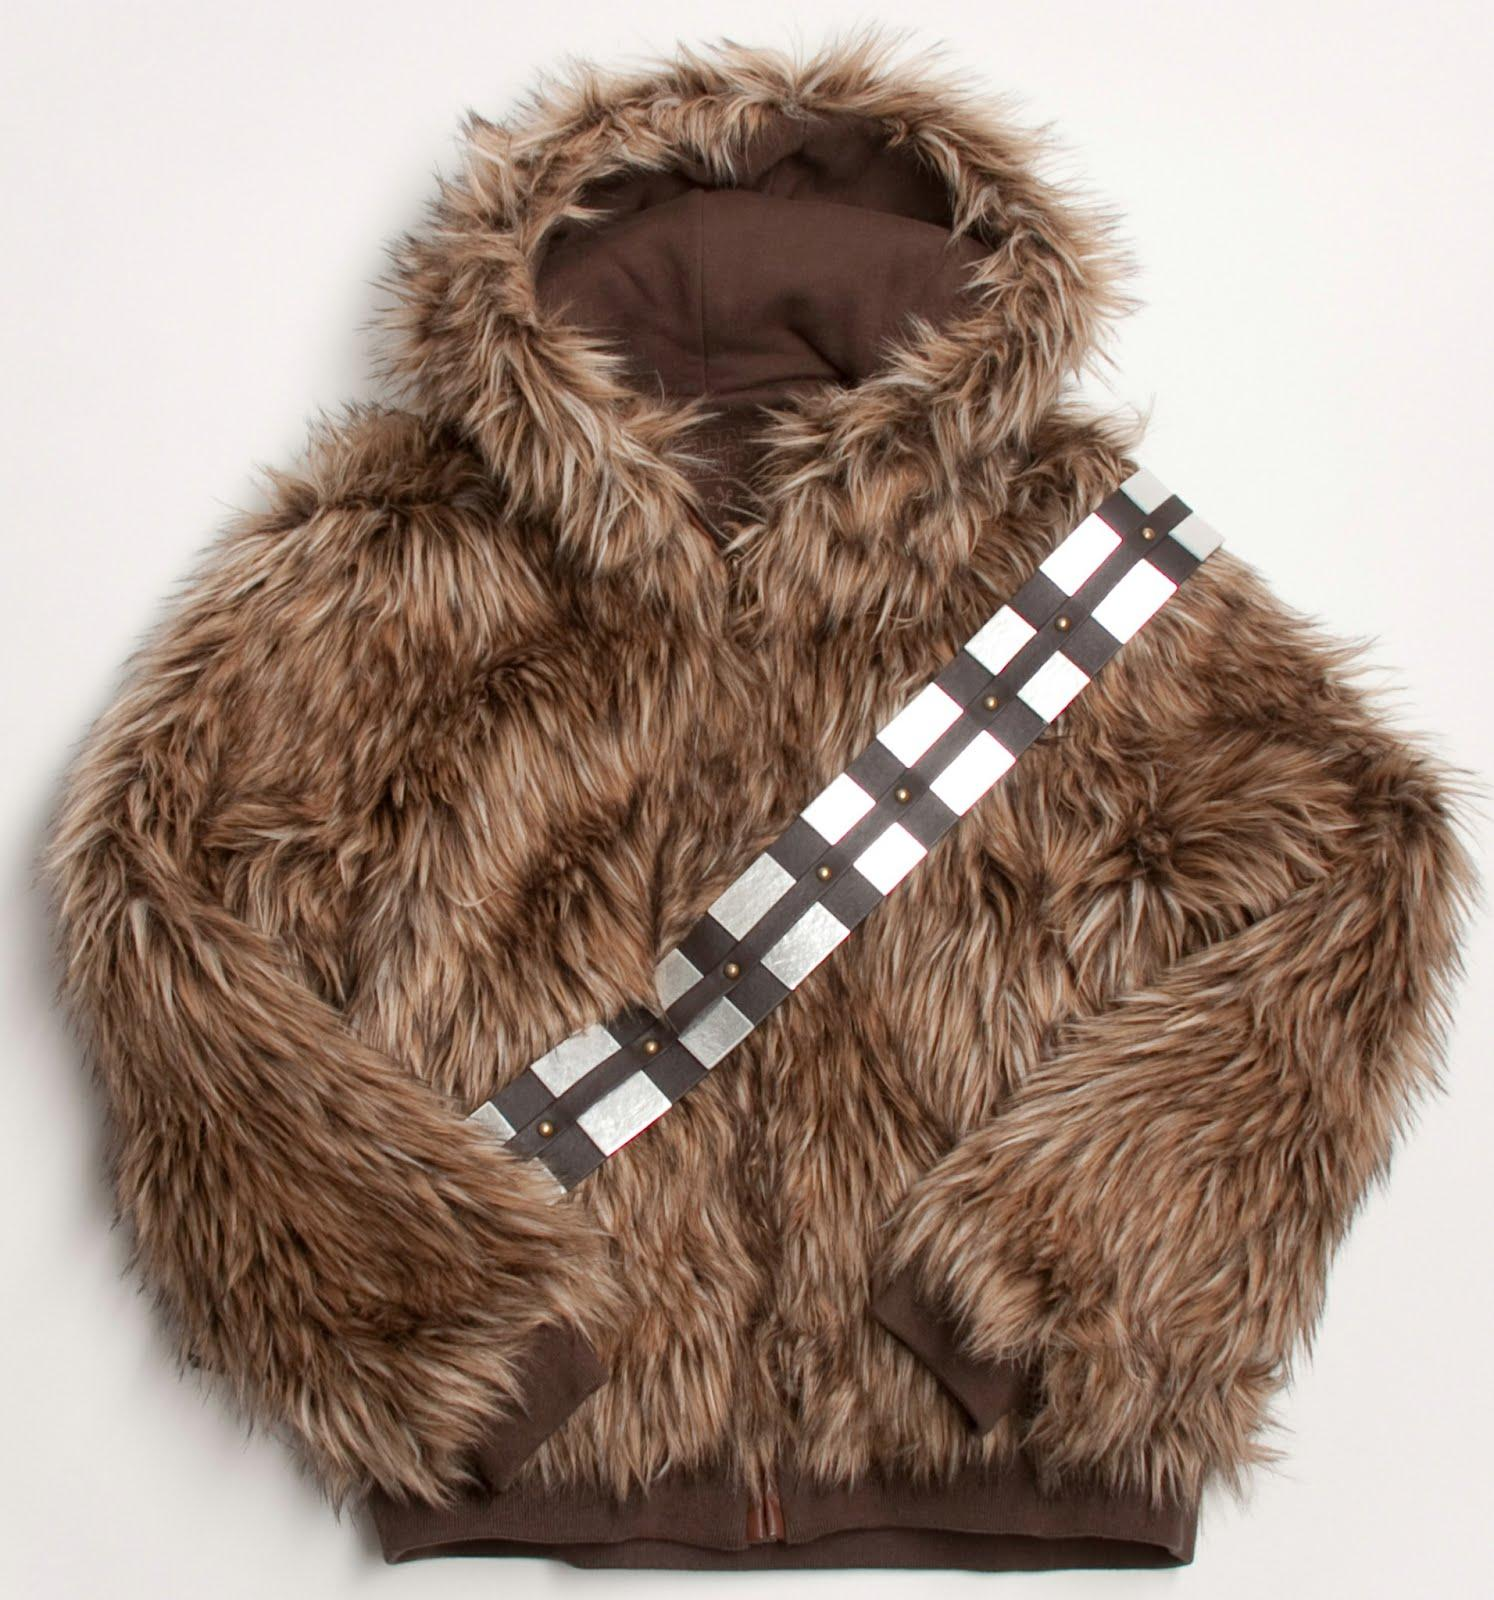 How You Can Own A Marc Ecko Star Wars Hoodie For Free Nerd Caliber - Hoodie will turn you into chewbacca from star wars